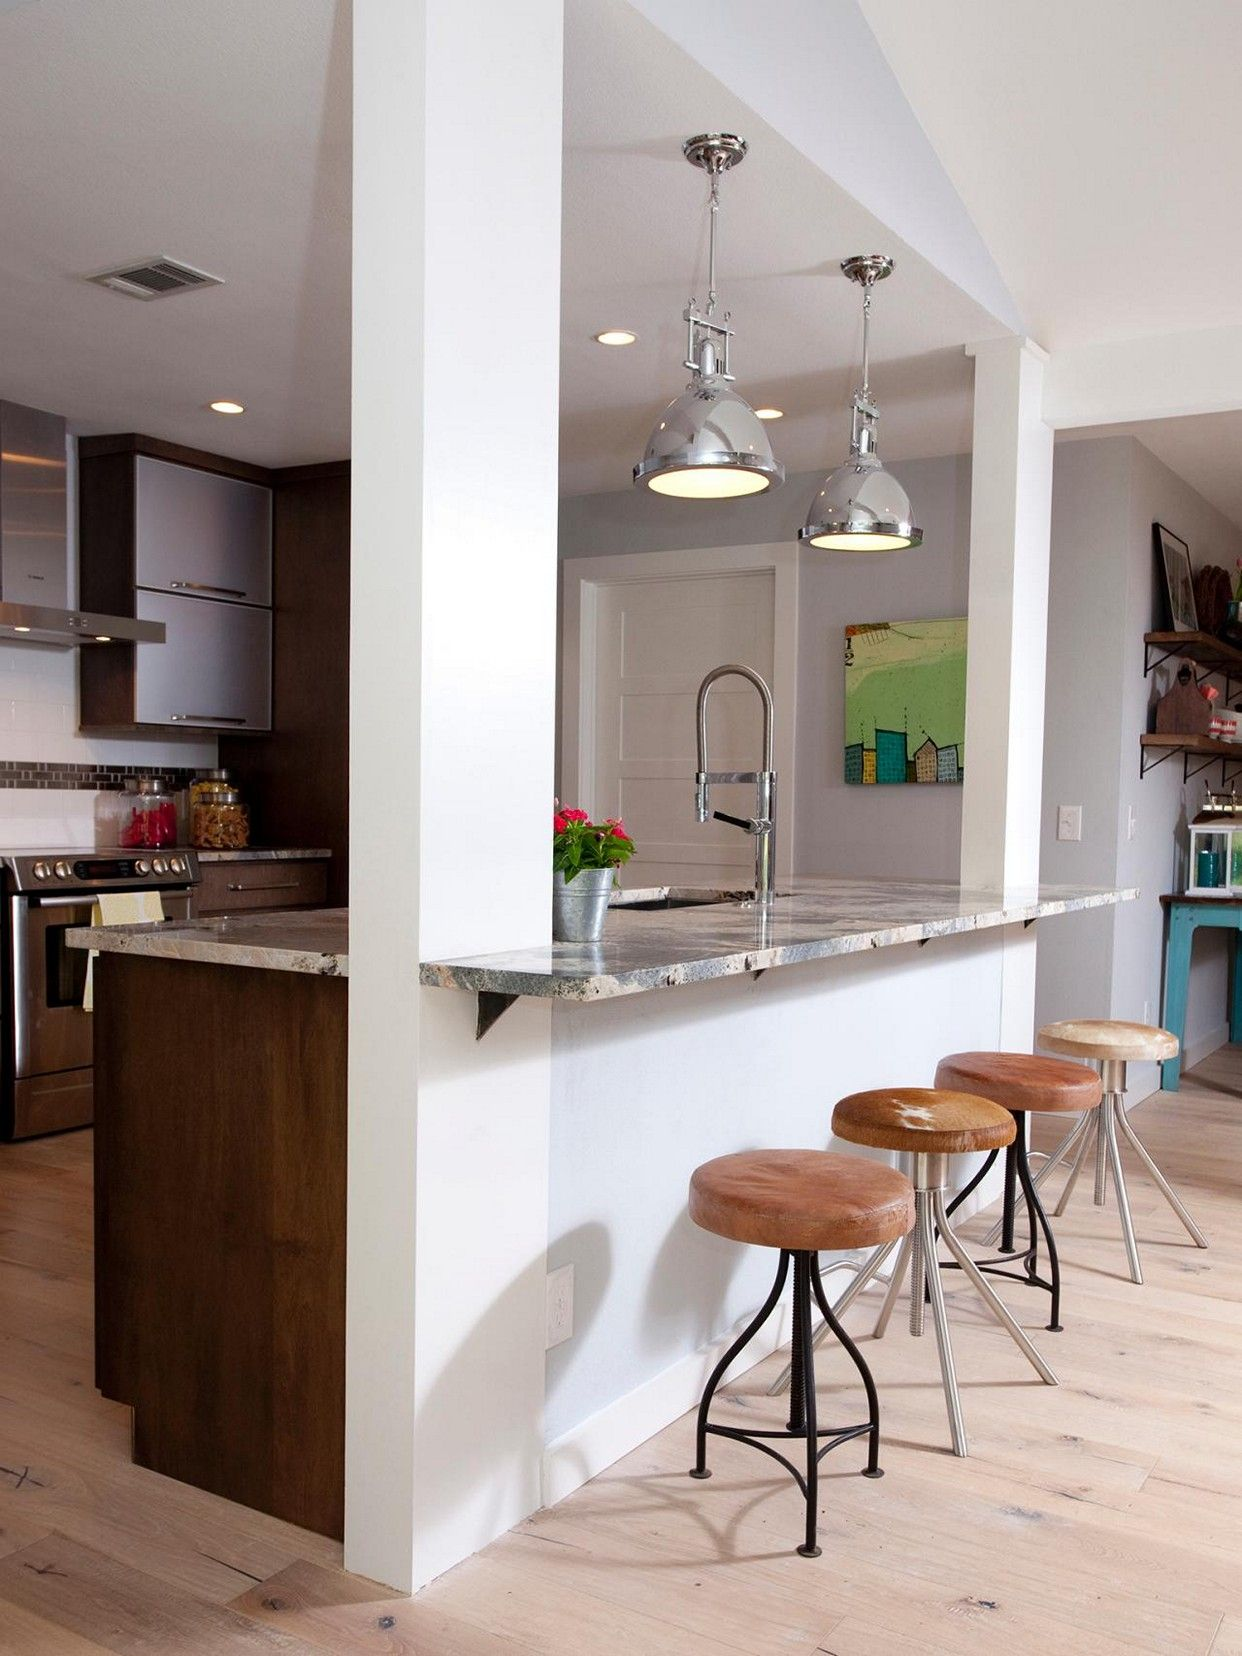 Open Concept Kitchen With Half Wall Ideas Kitchen Bar Design Small Kitchen Layouts Small Kitchen Design Layout